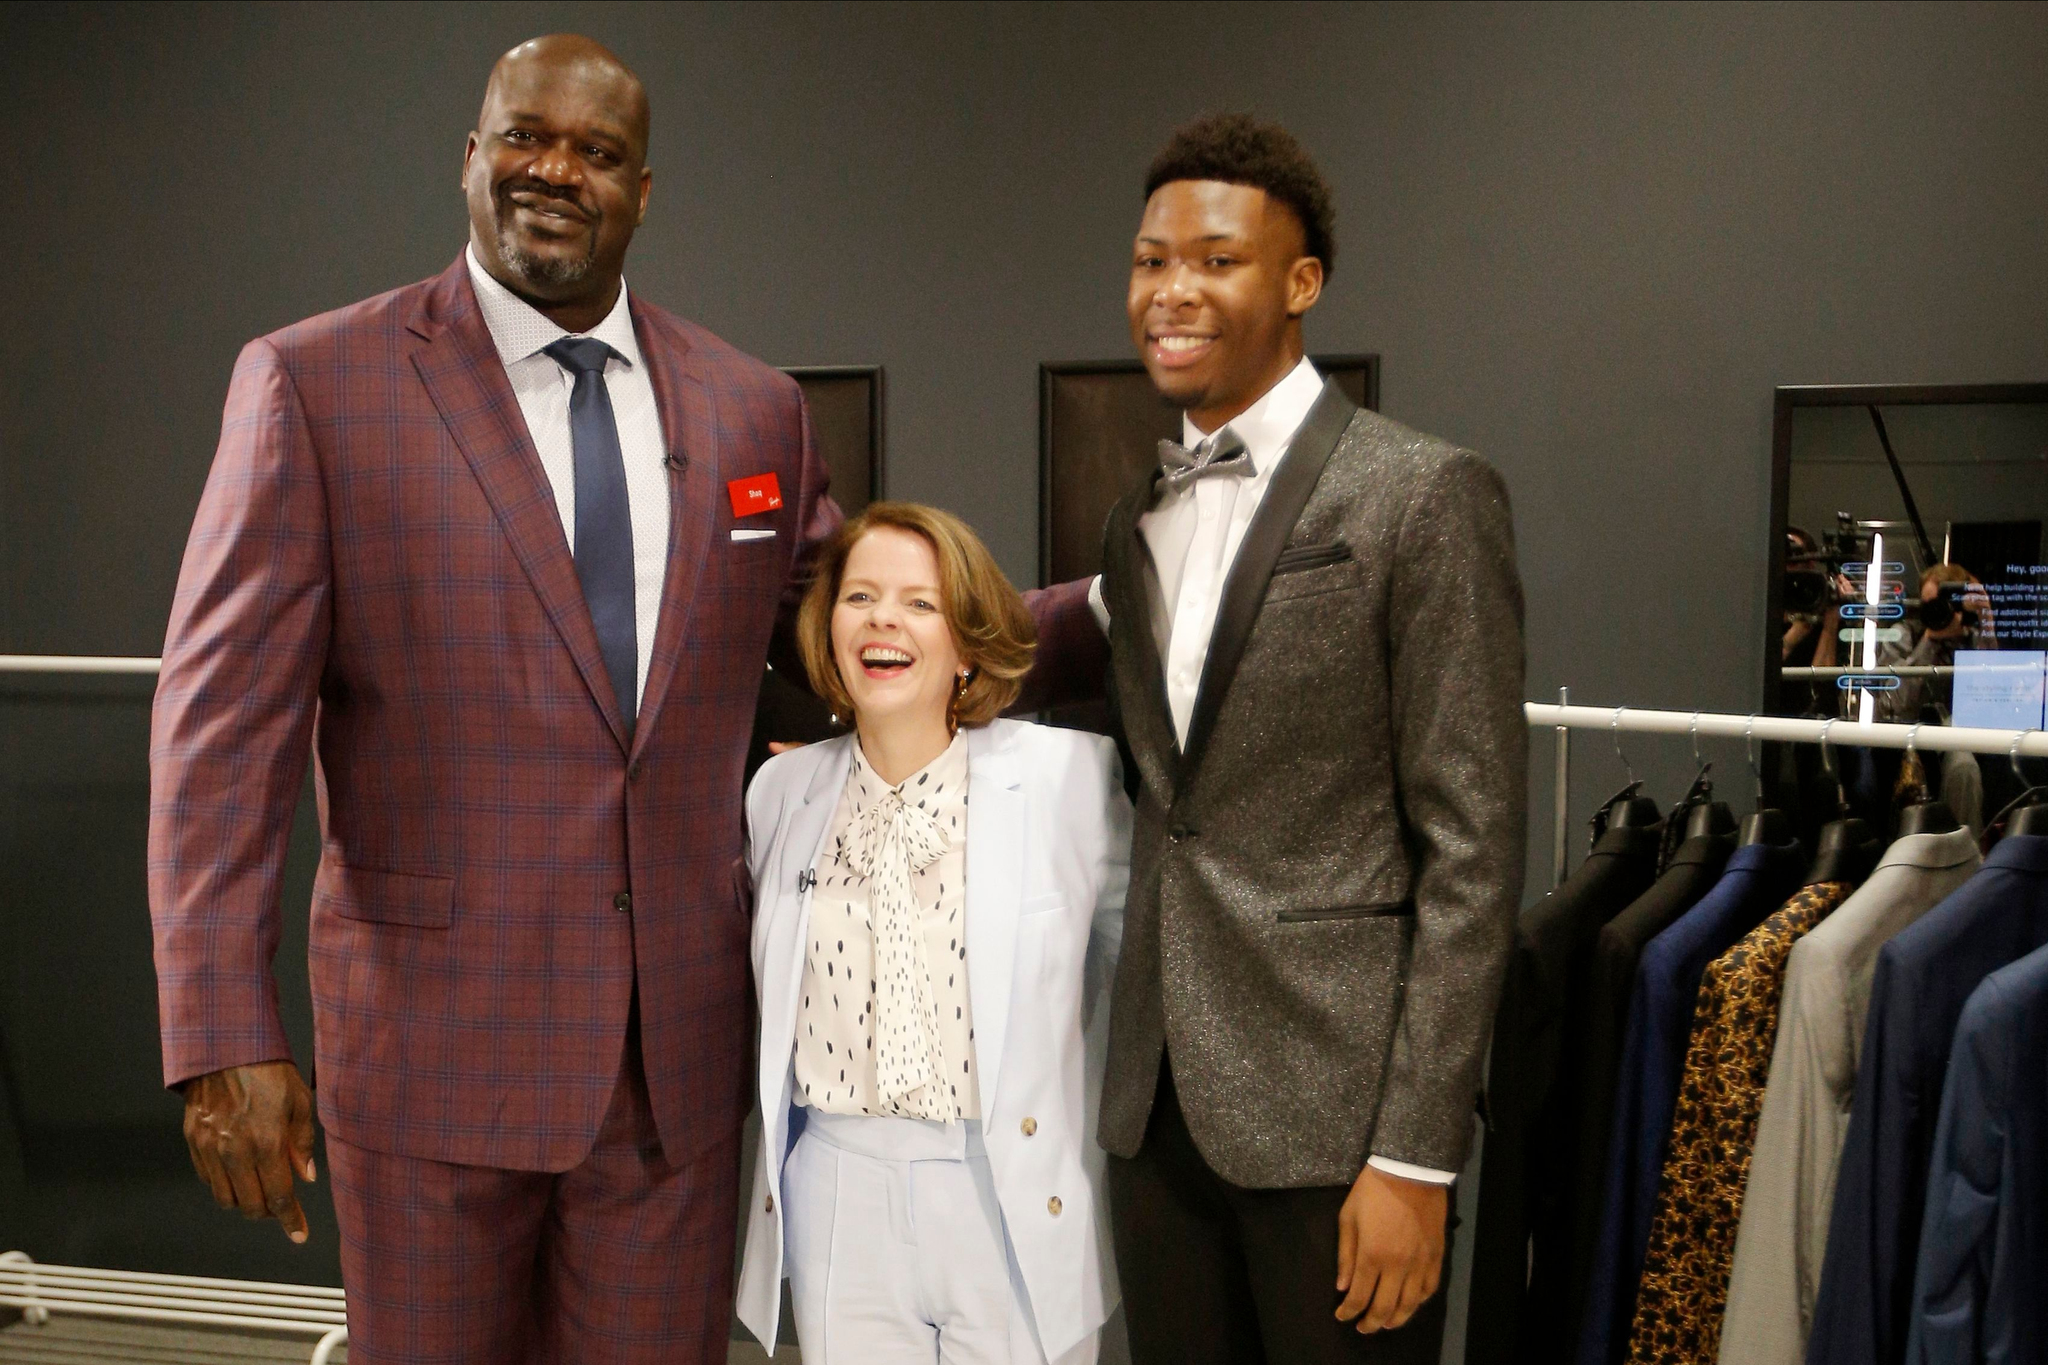 Shaquille O'Neal, Jill Soltau and Oak Cliff High School student-athlete Kylon Owens in Hurst, Texas. Penney's has a Shaquille O'Neal men's line.